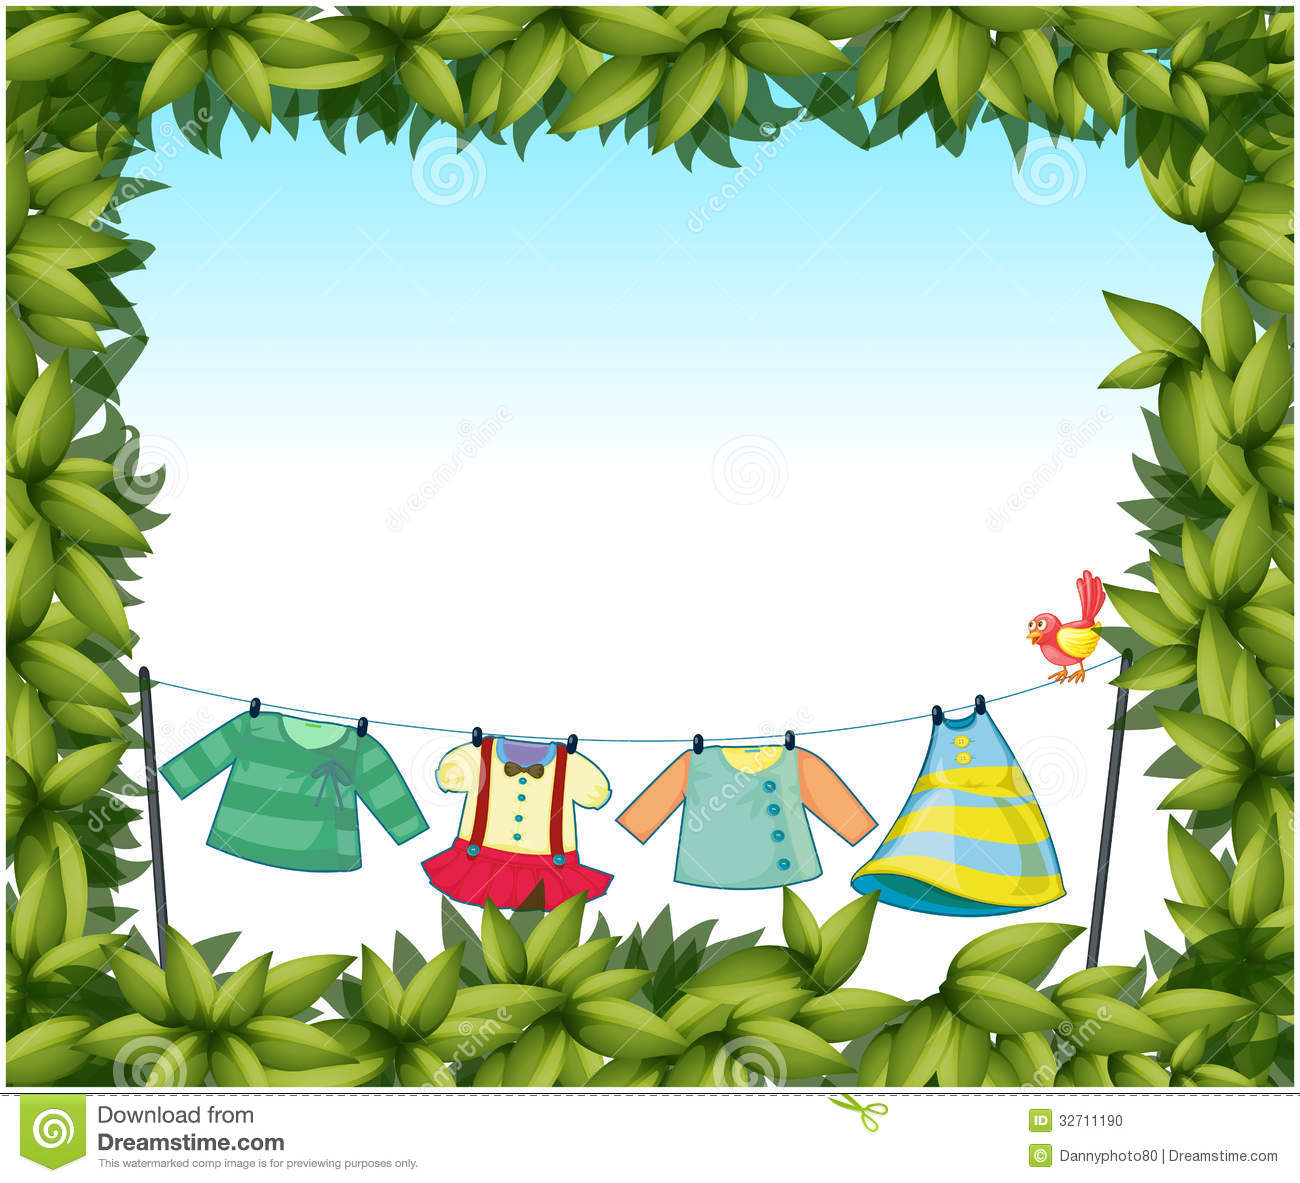 A Frame Border With Hanging Clothes And A Bird Stock Vector ...